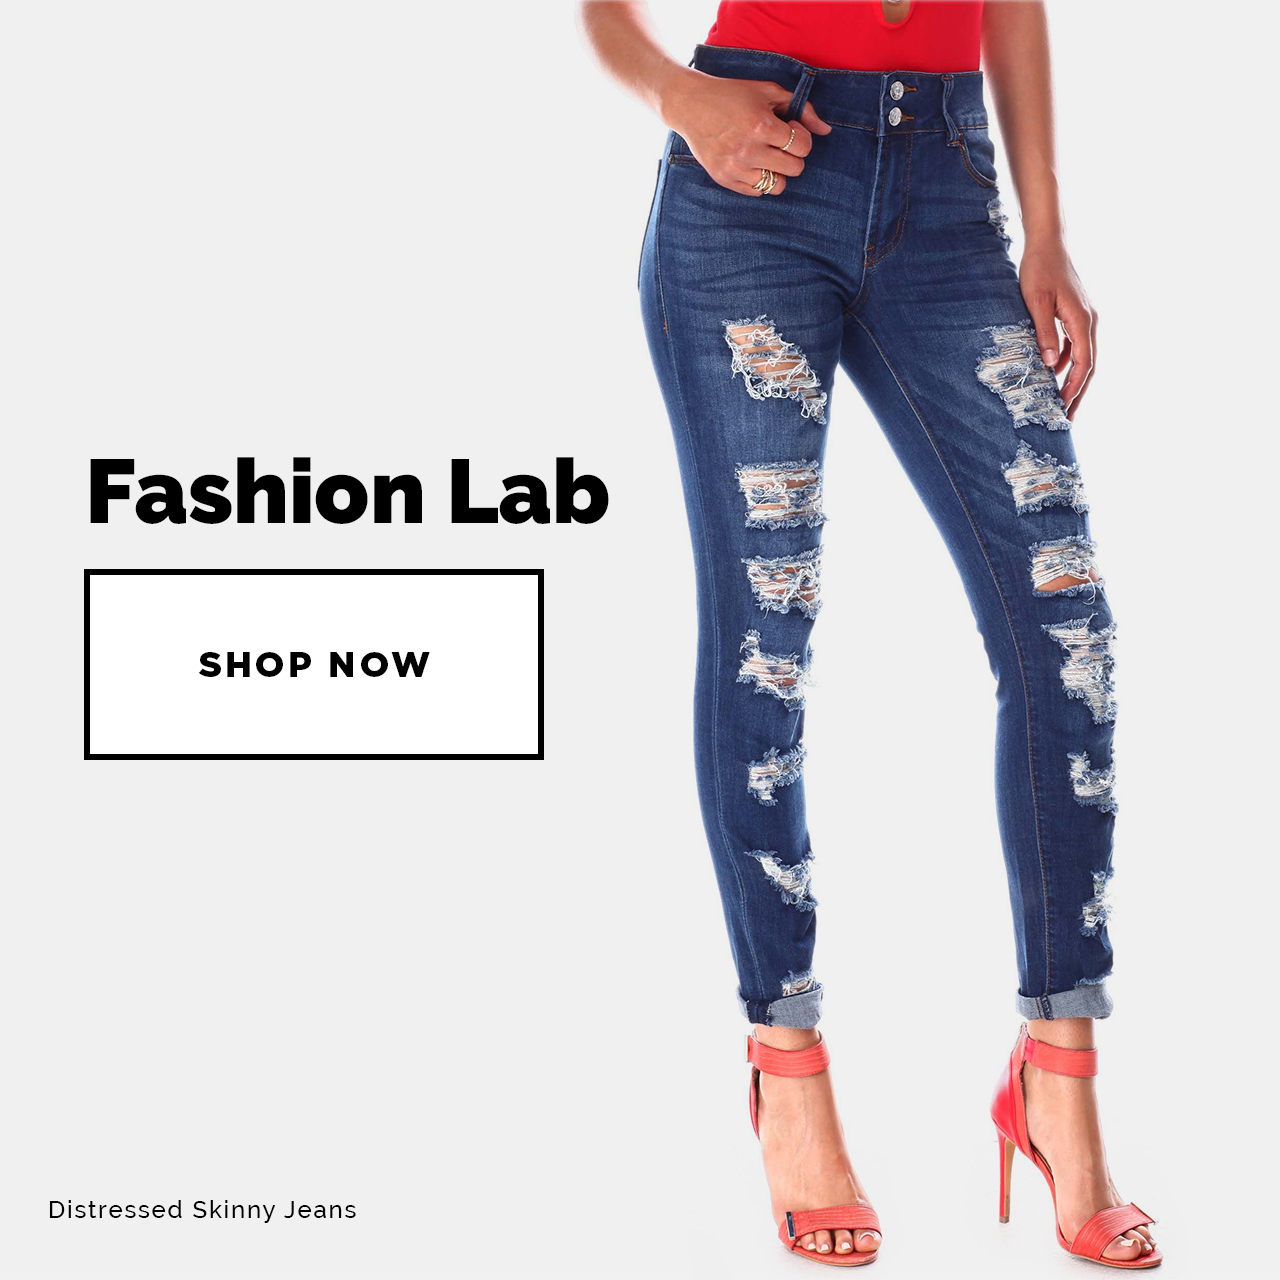 Fashion Lab - Shop Now! Featuring Distressed Skinny Jeans